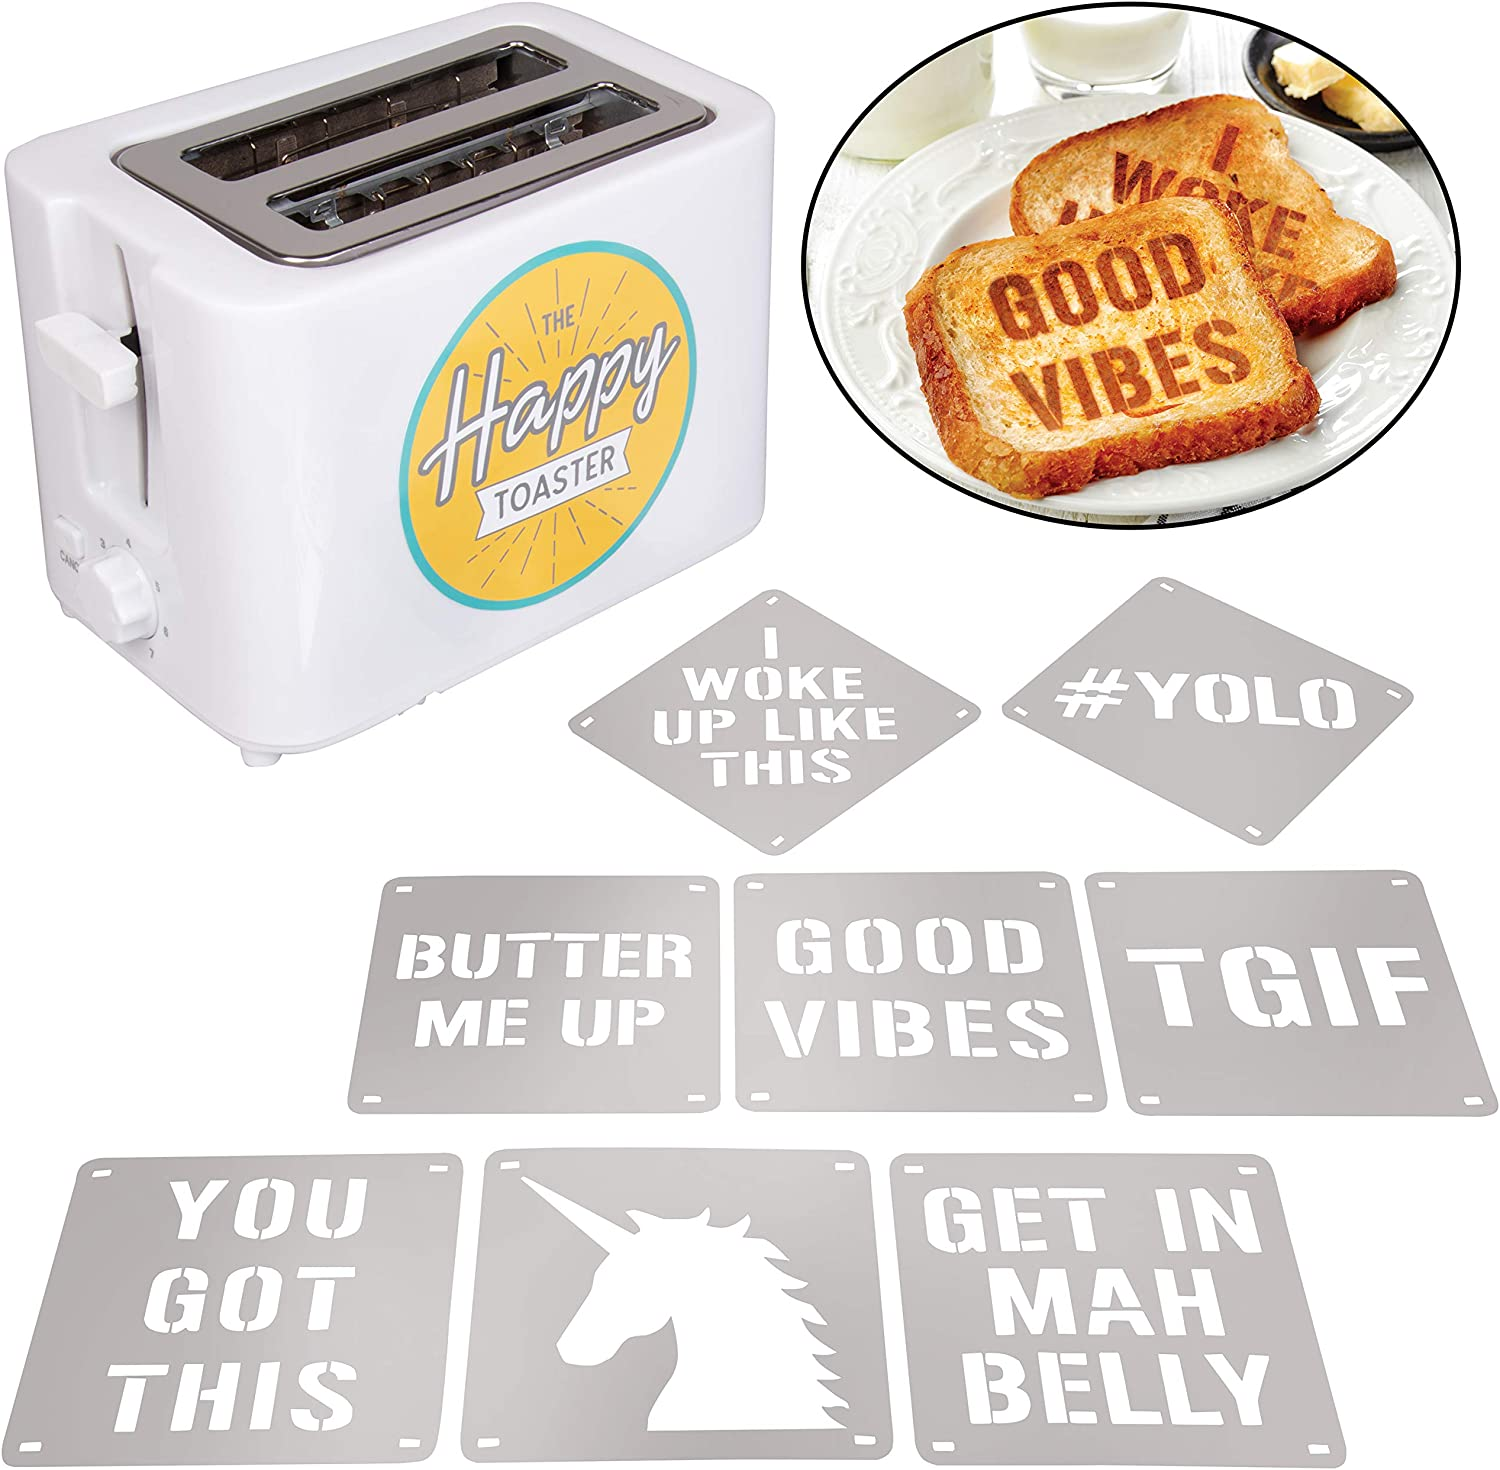 2-Slot Impression Toaster with 8 Interchangable Happy Morning Novelty Design Plates - Make Breakfast Happy! Great for Mother's Day